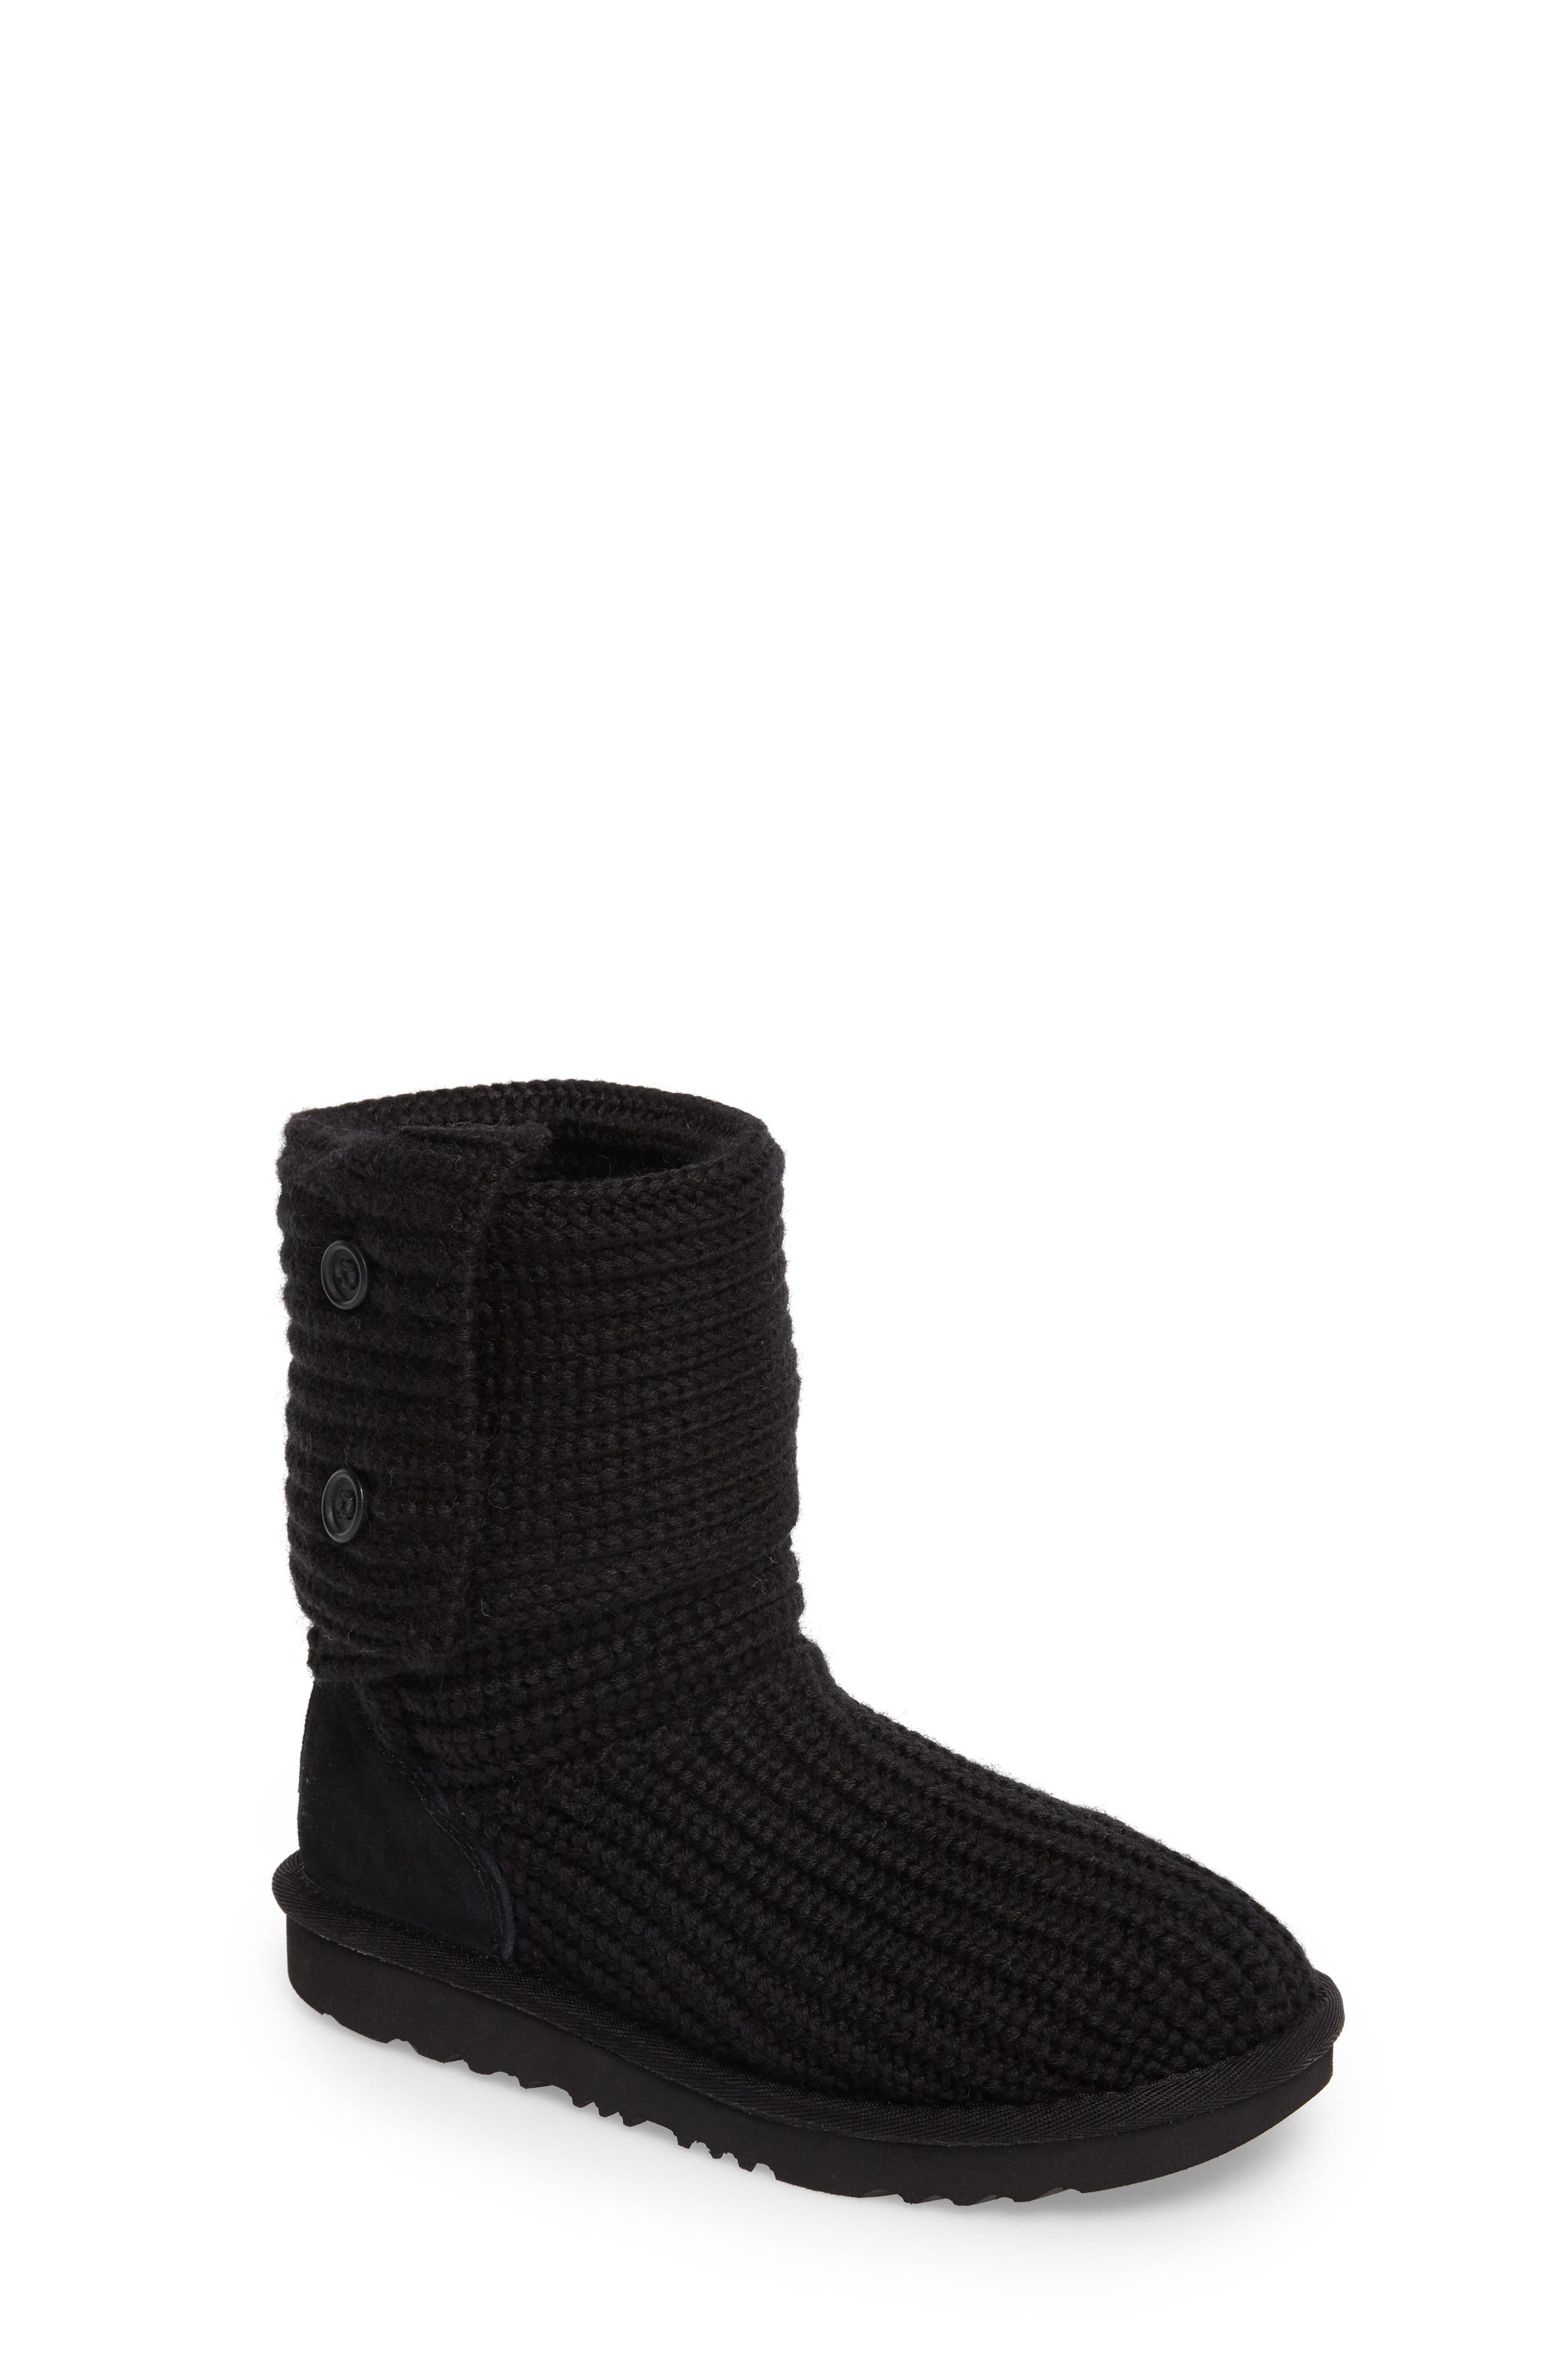 Cardy II Cableknit Boot,                         Main,                         color, BLACK